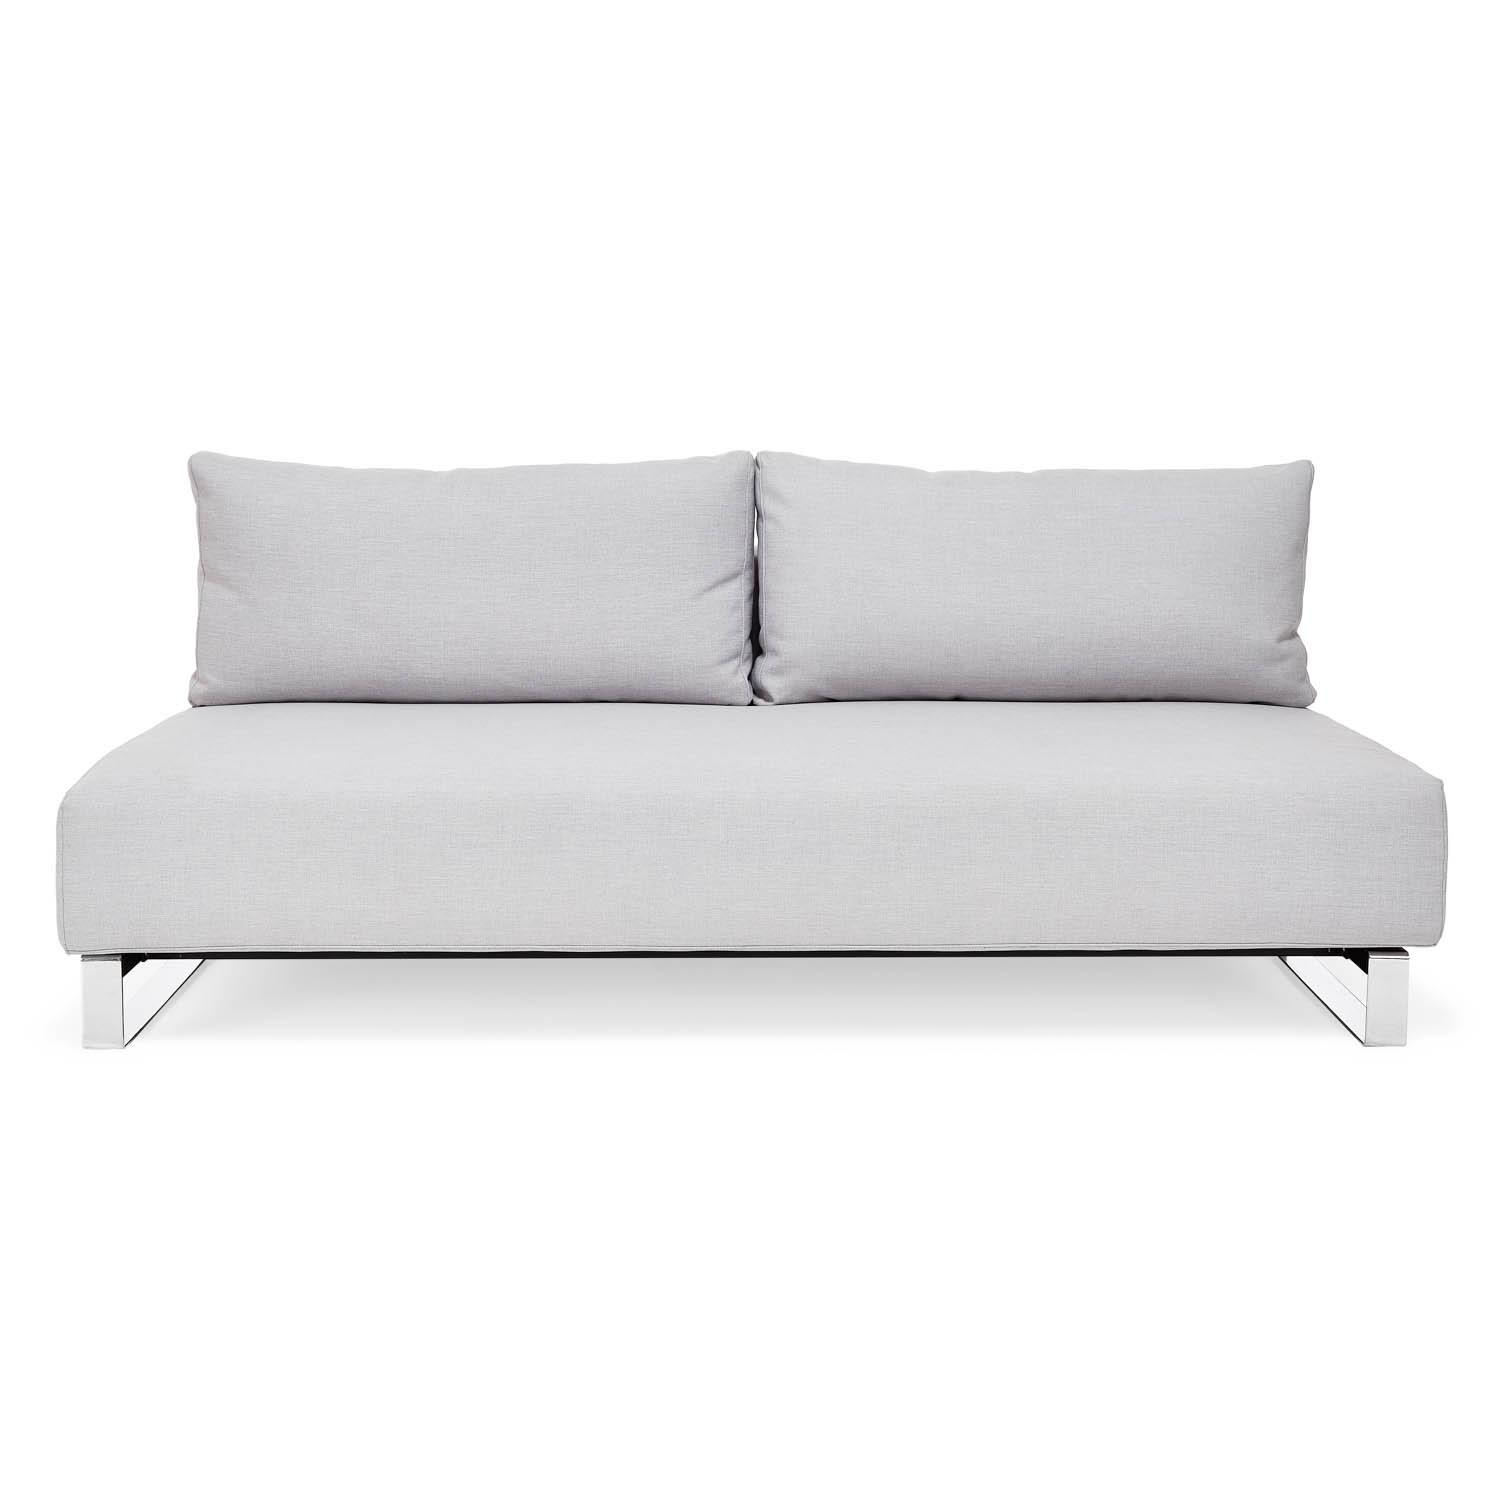 abc sofa bed clearance real leather sofas 20 top day beds ideas